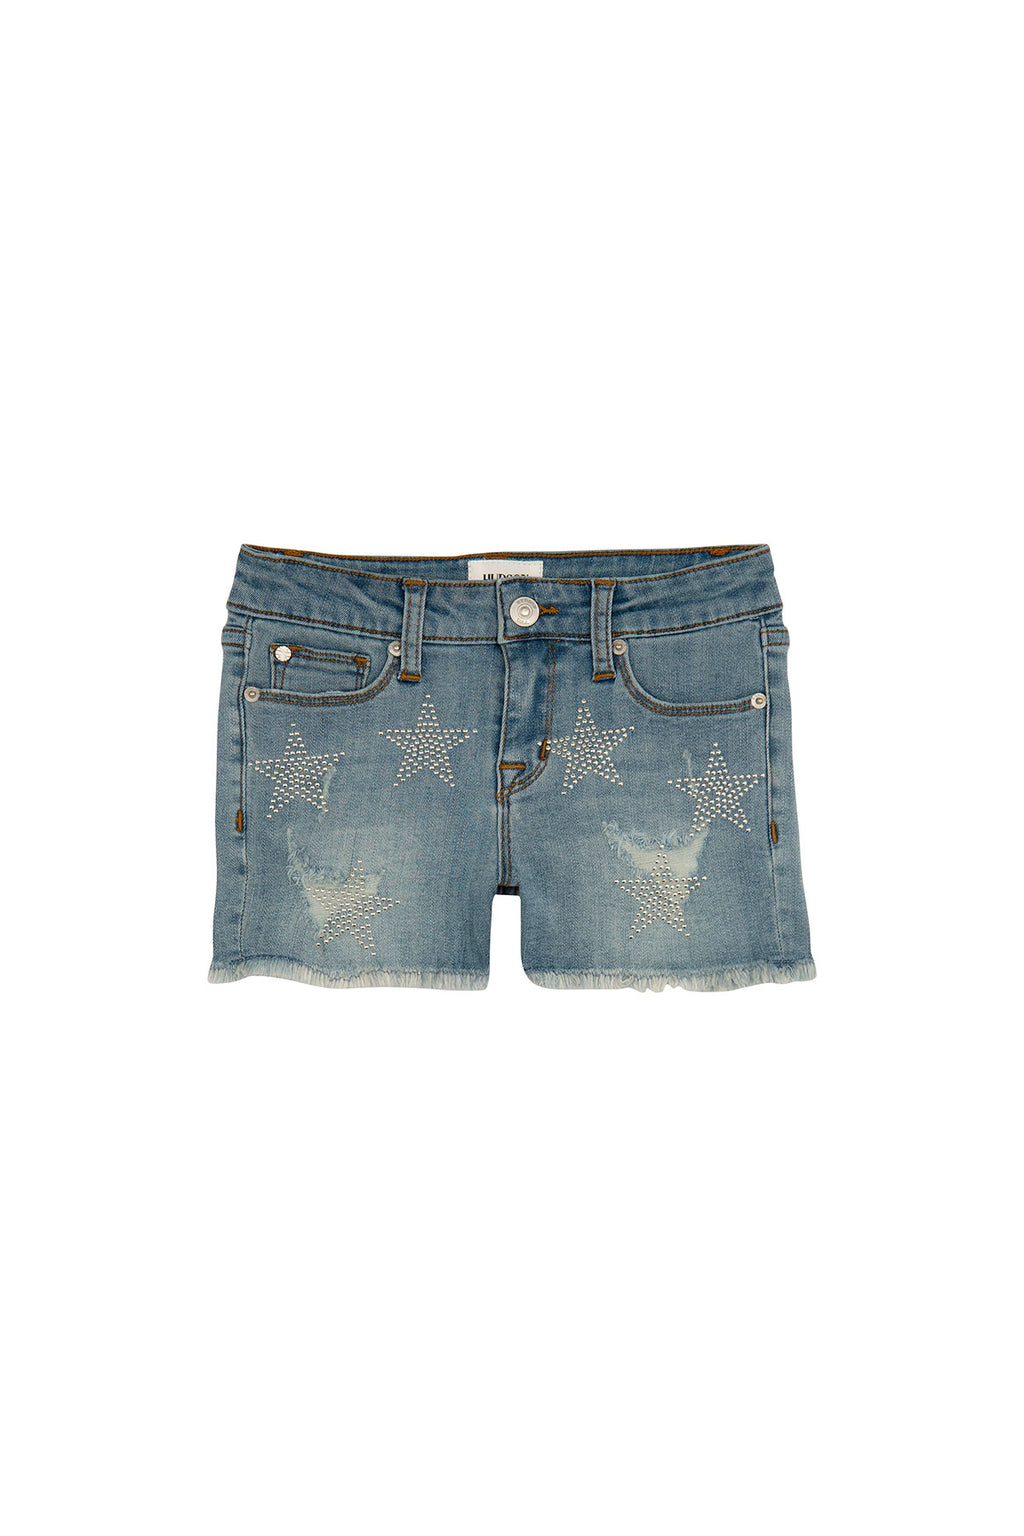 GIRLS CELESTINA SHORT, SIZES 7-16 - LONE STAR - Image 1